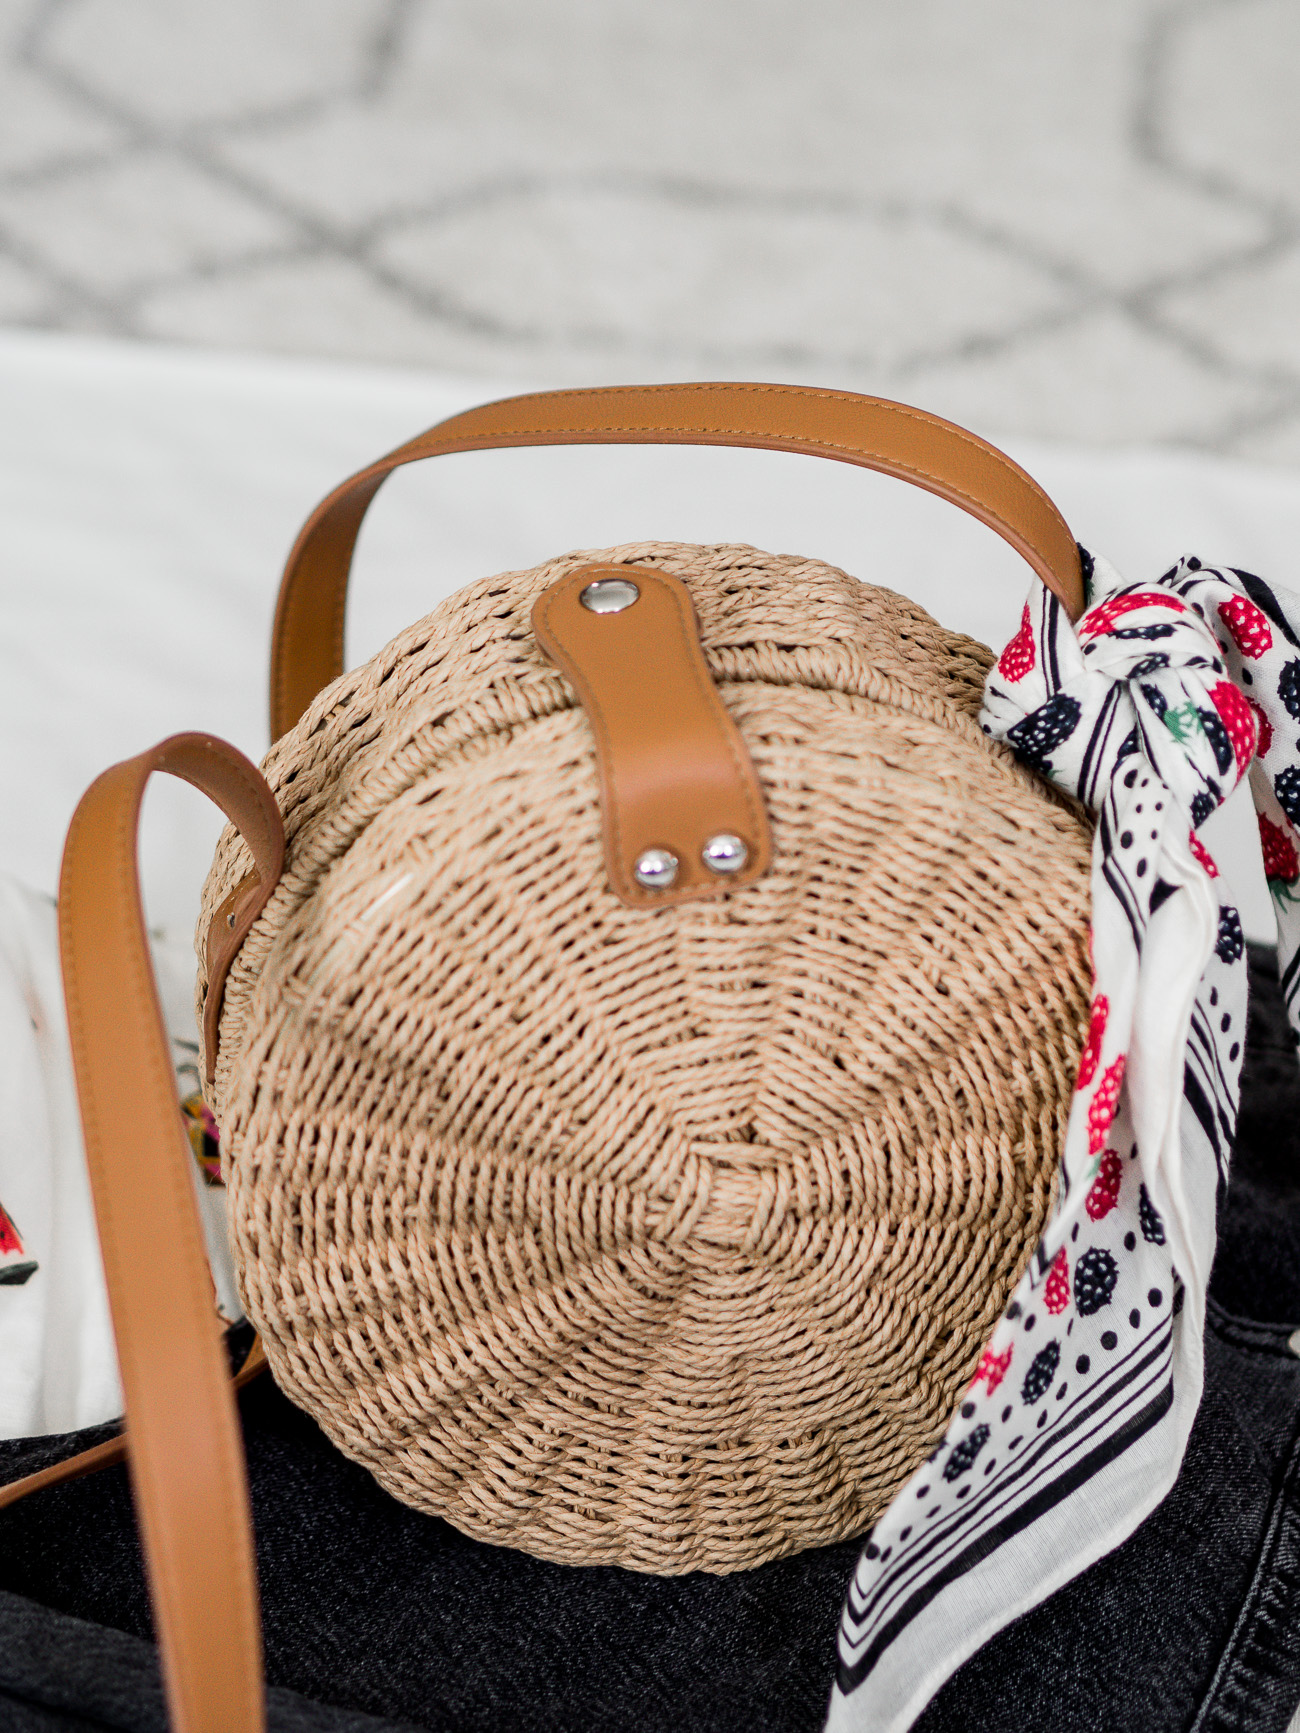 Really cute round straw bag from Topshop, which is under $50 and won't break the bank